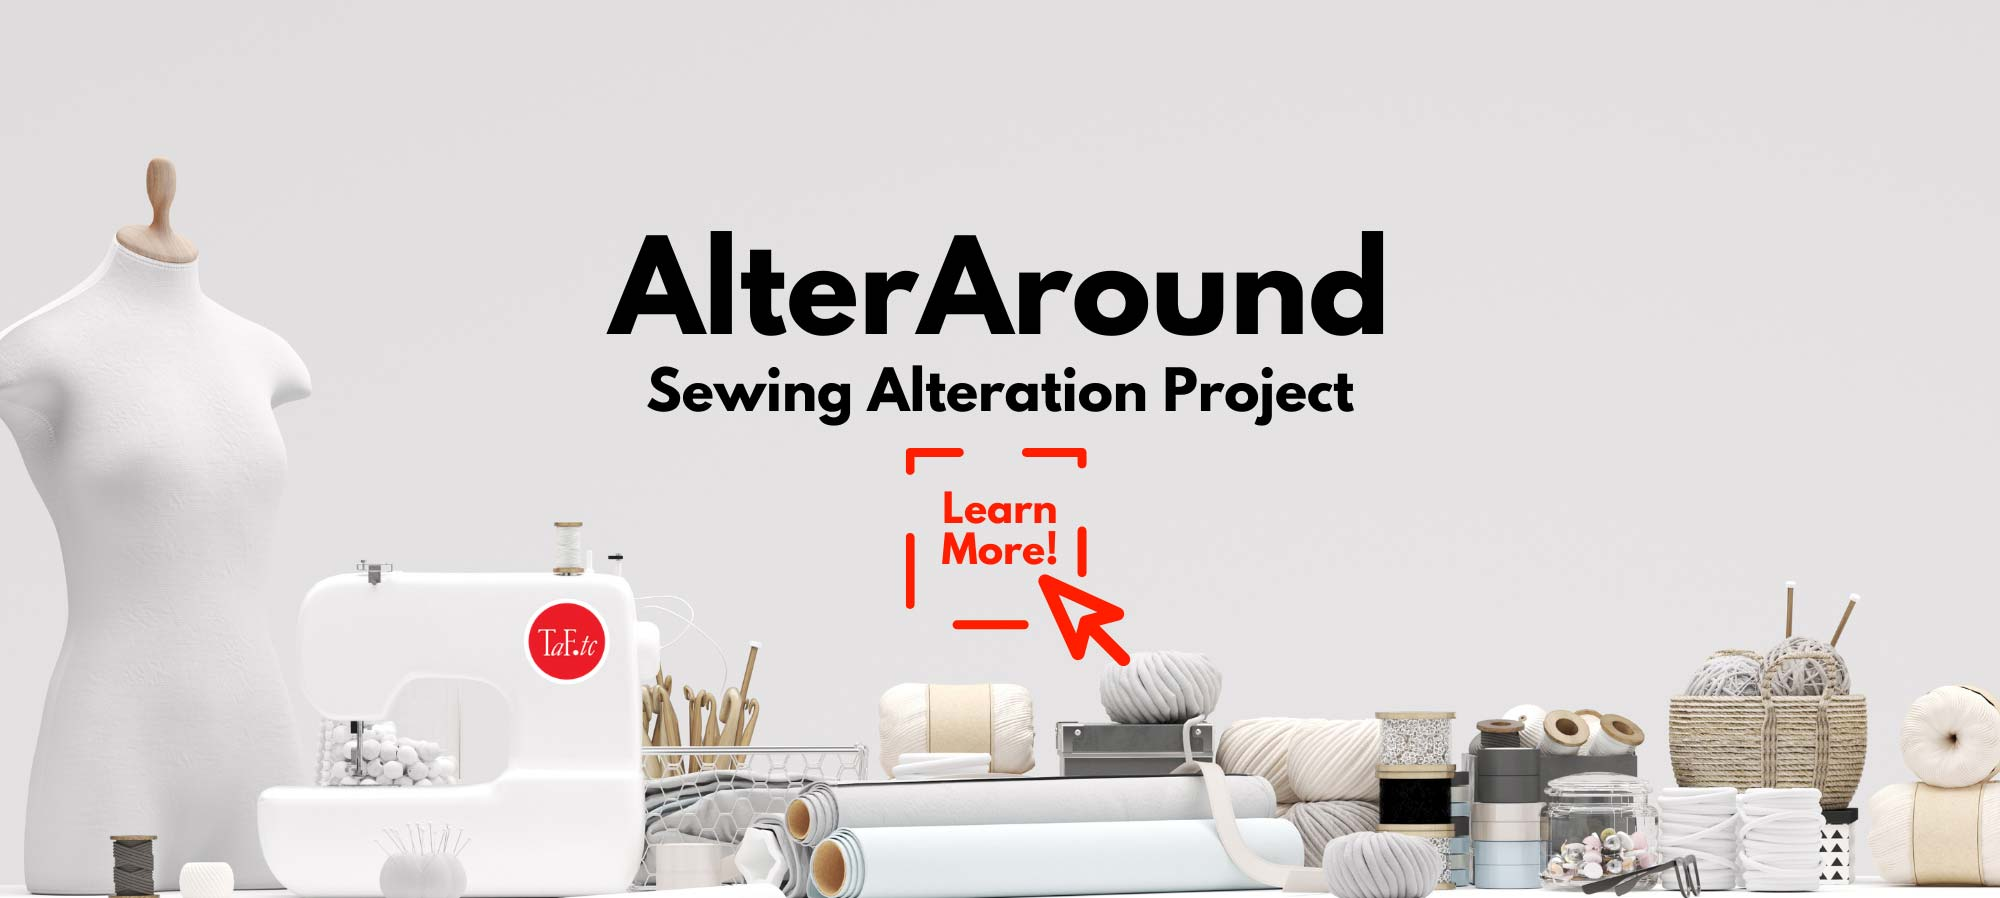 Sewing Alteration Project (AlterAround)